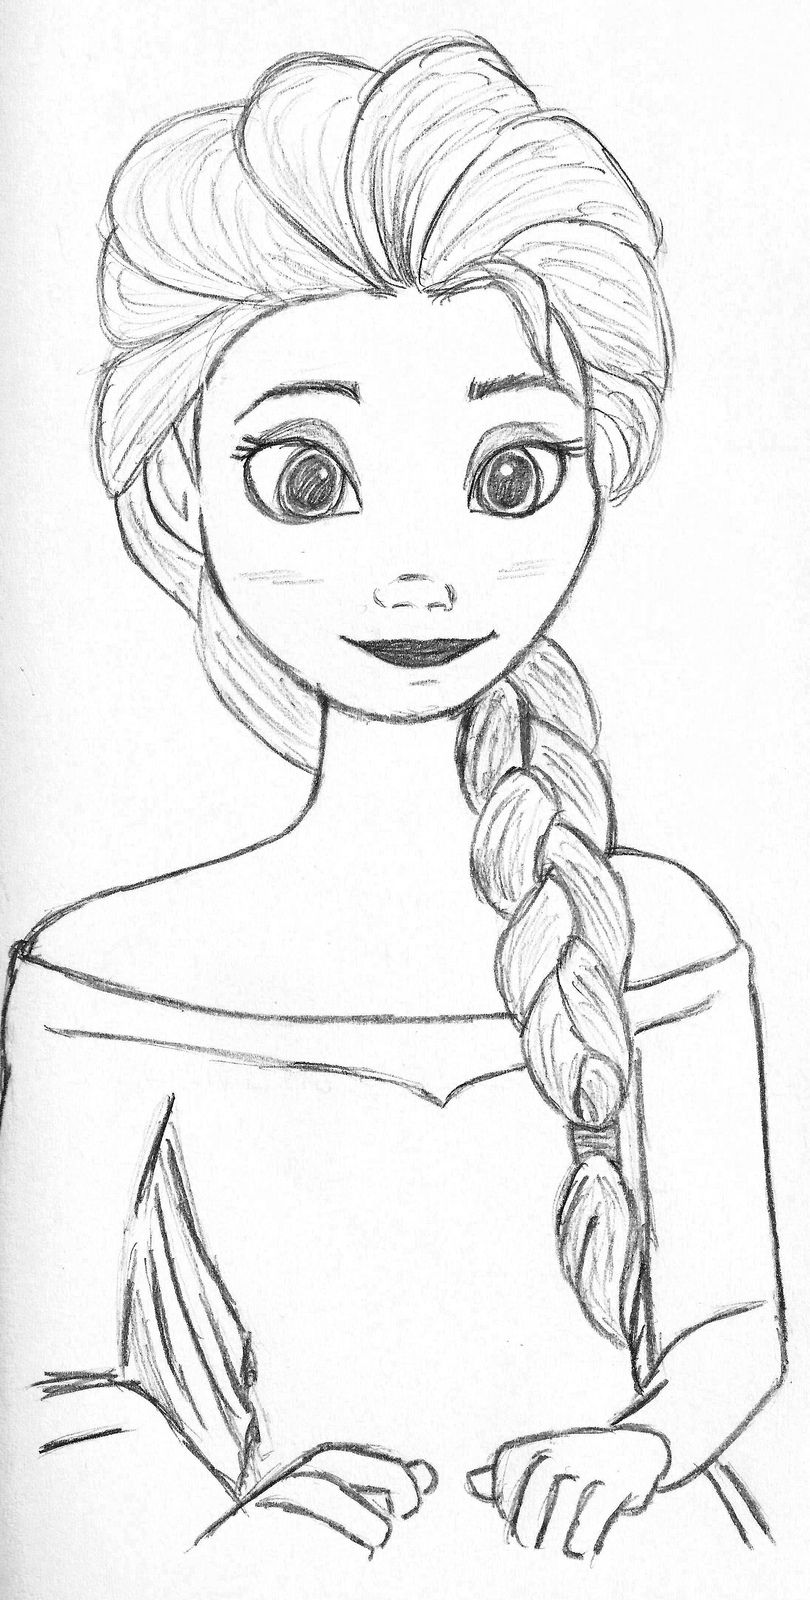 Elsa From Frozen My Tribute To The Last Wonderful Disney Movie Disney Drawings Sketches Disney Art Drawings Disney Princess Drawings